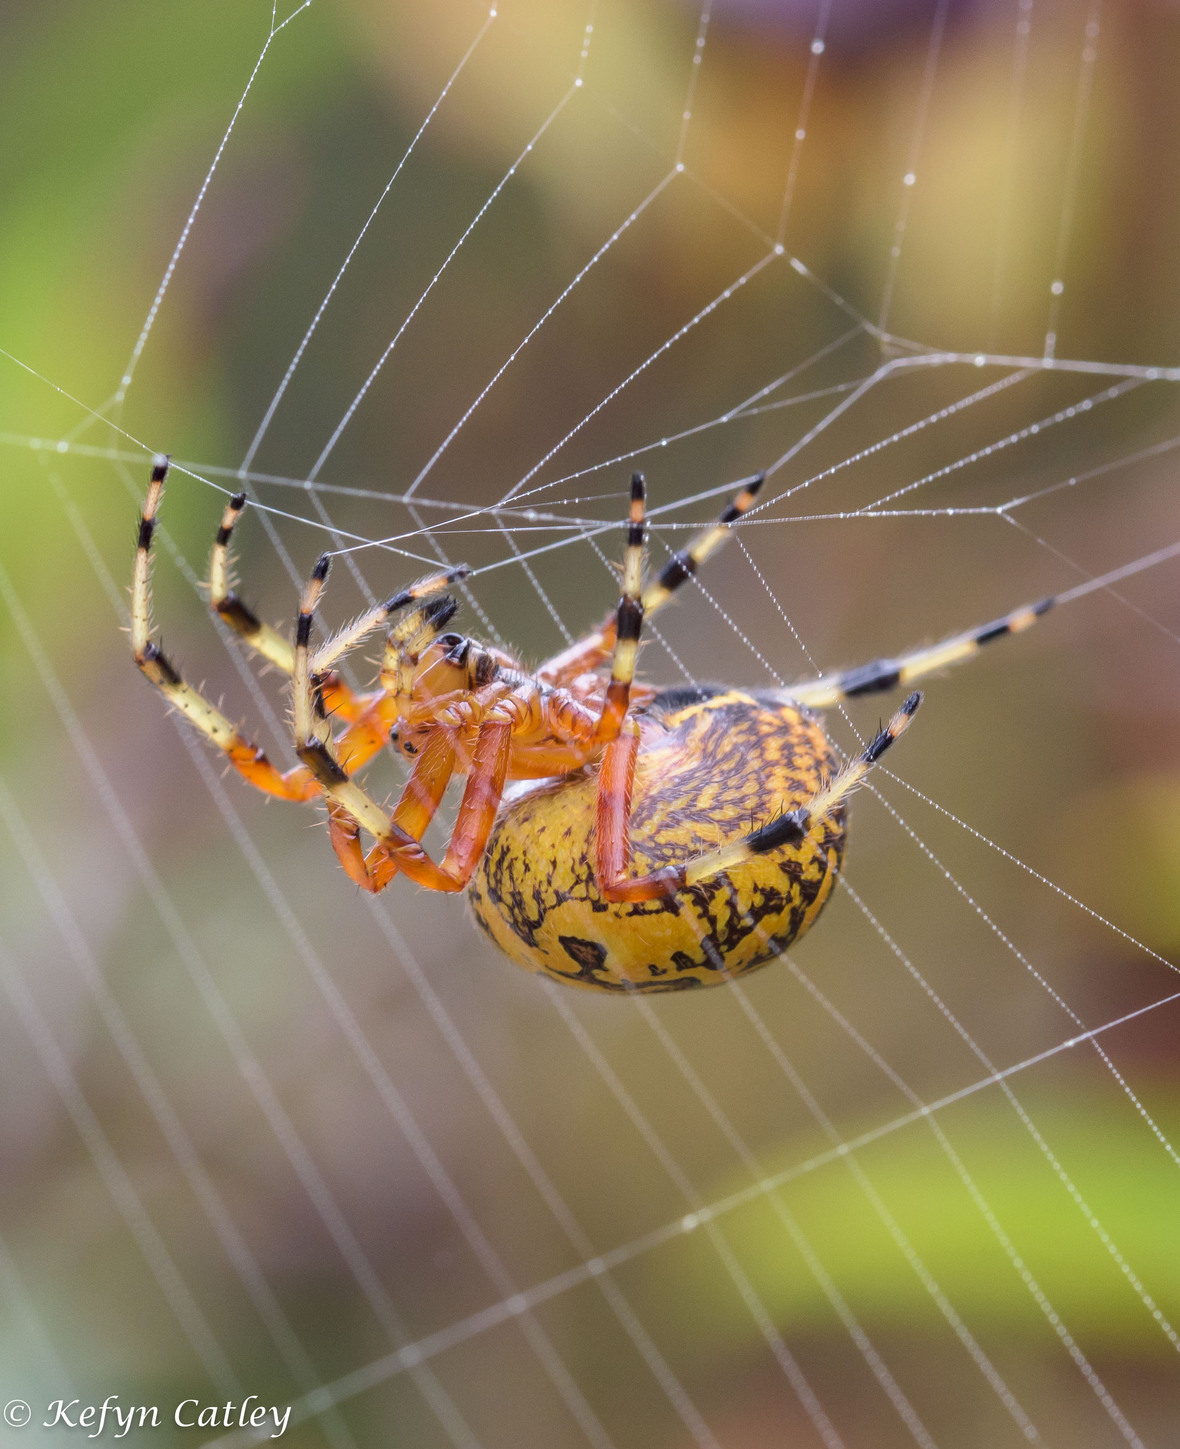 Catley Eagle Hill spider 1